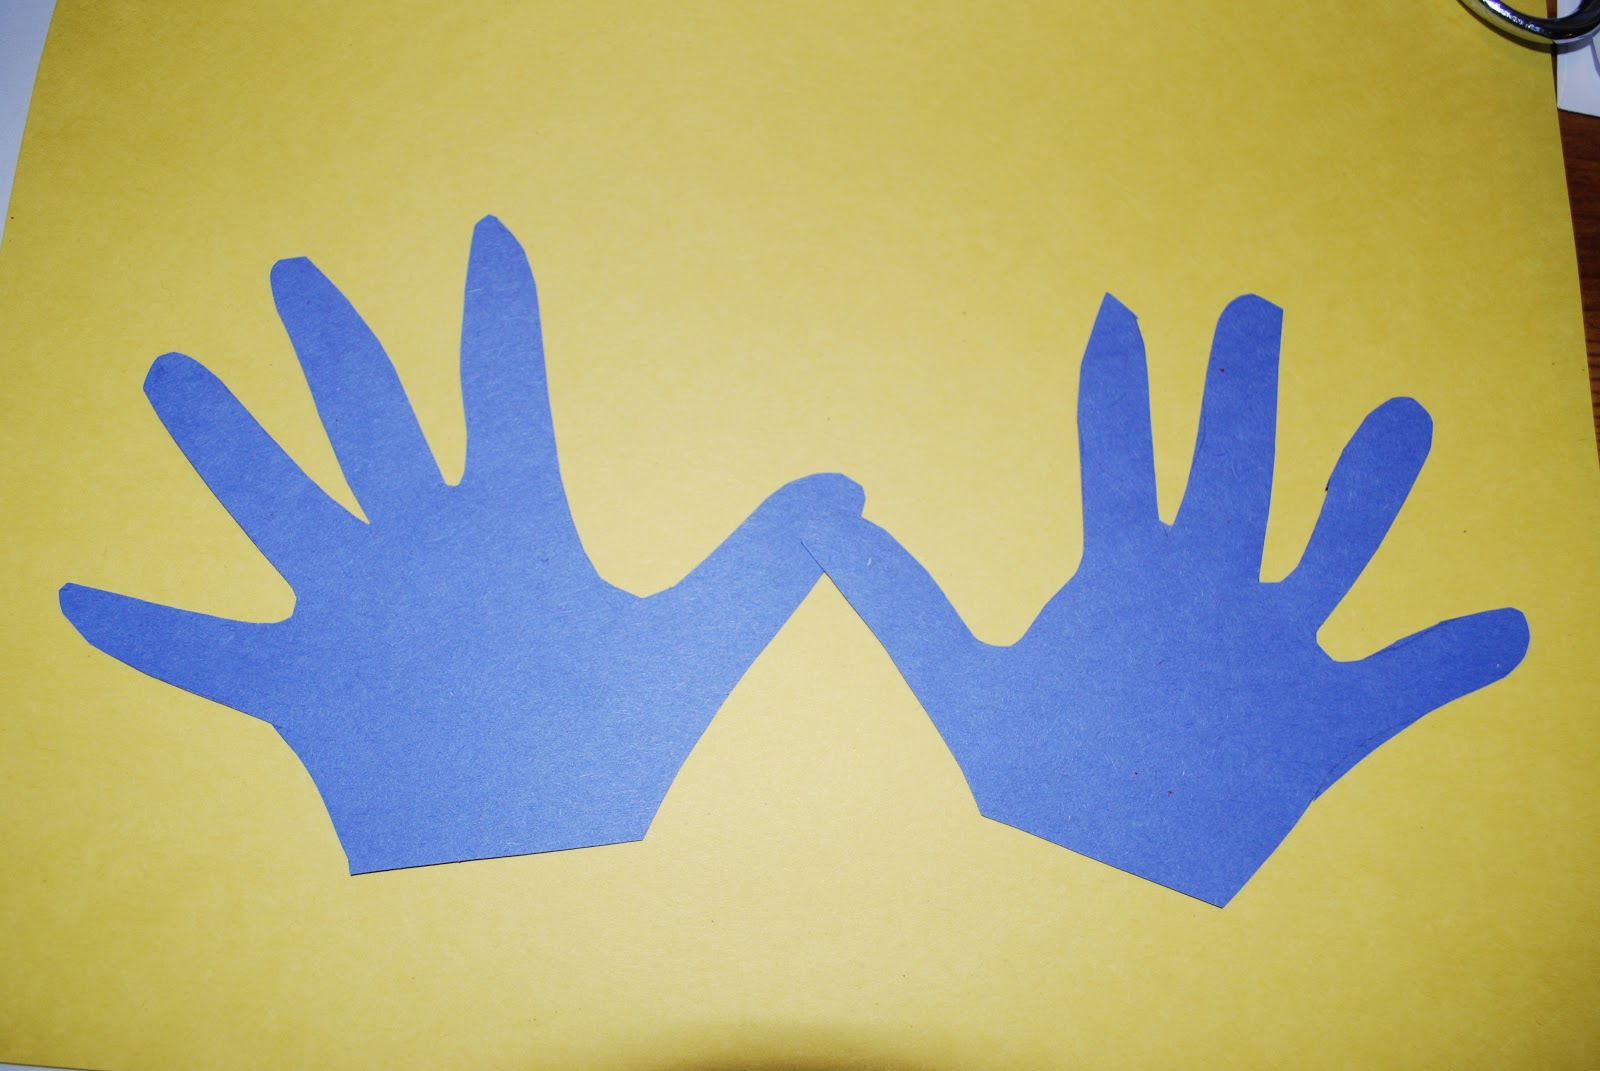 Uncategorized Handprint Menorah crafty mimzy handprint menorah glue hands with the thumbs overlapping punch out nine flames hole depending on size of hand prints you may want to cut the